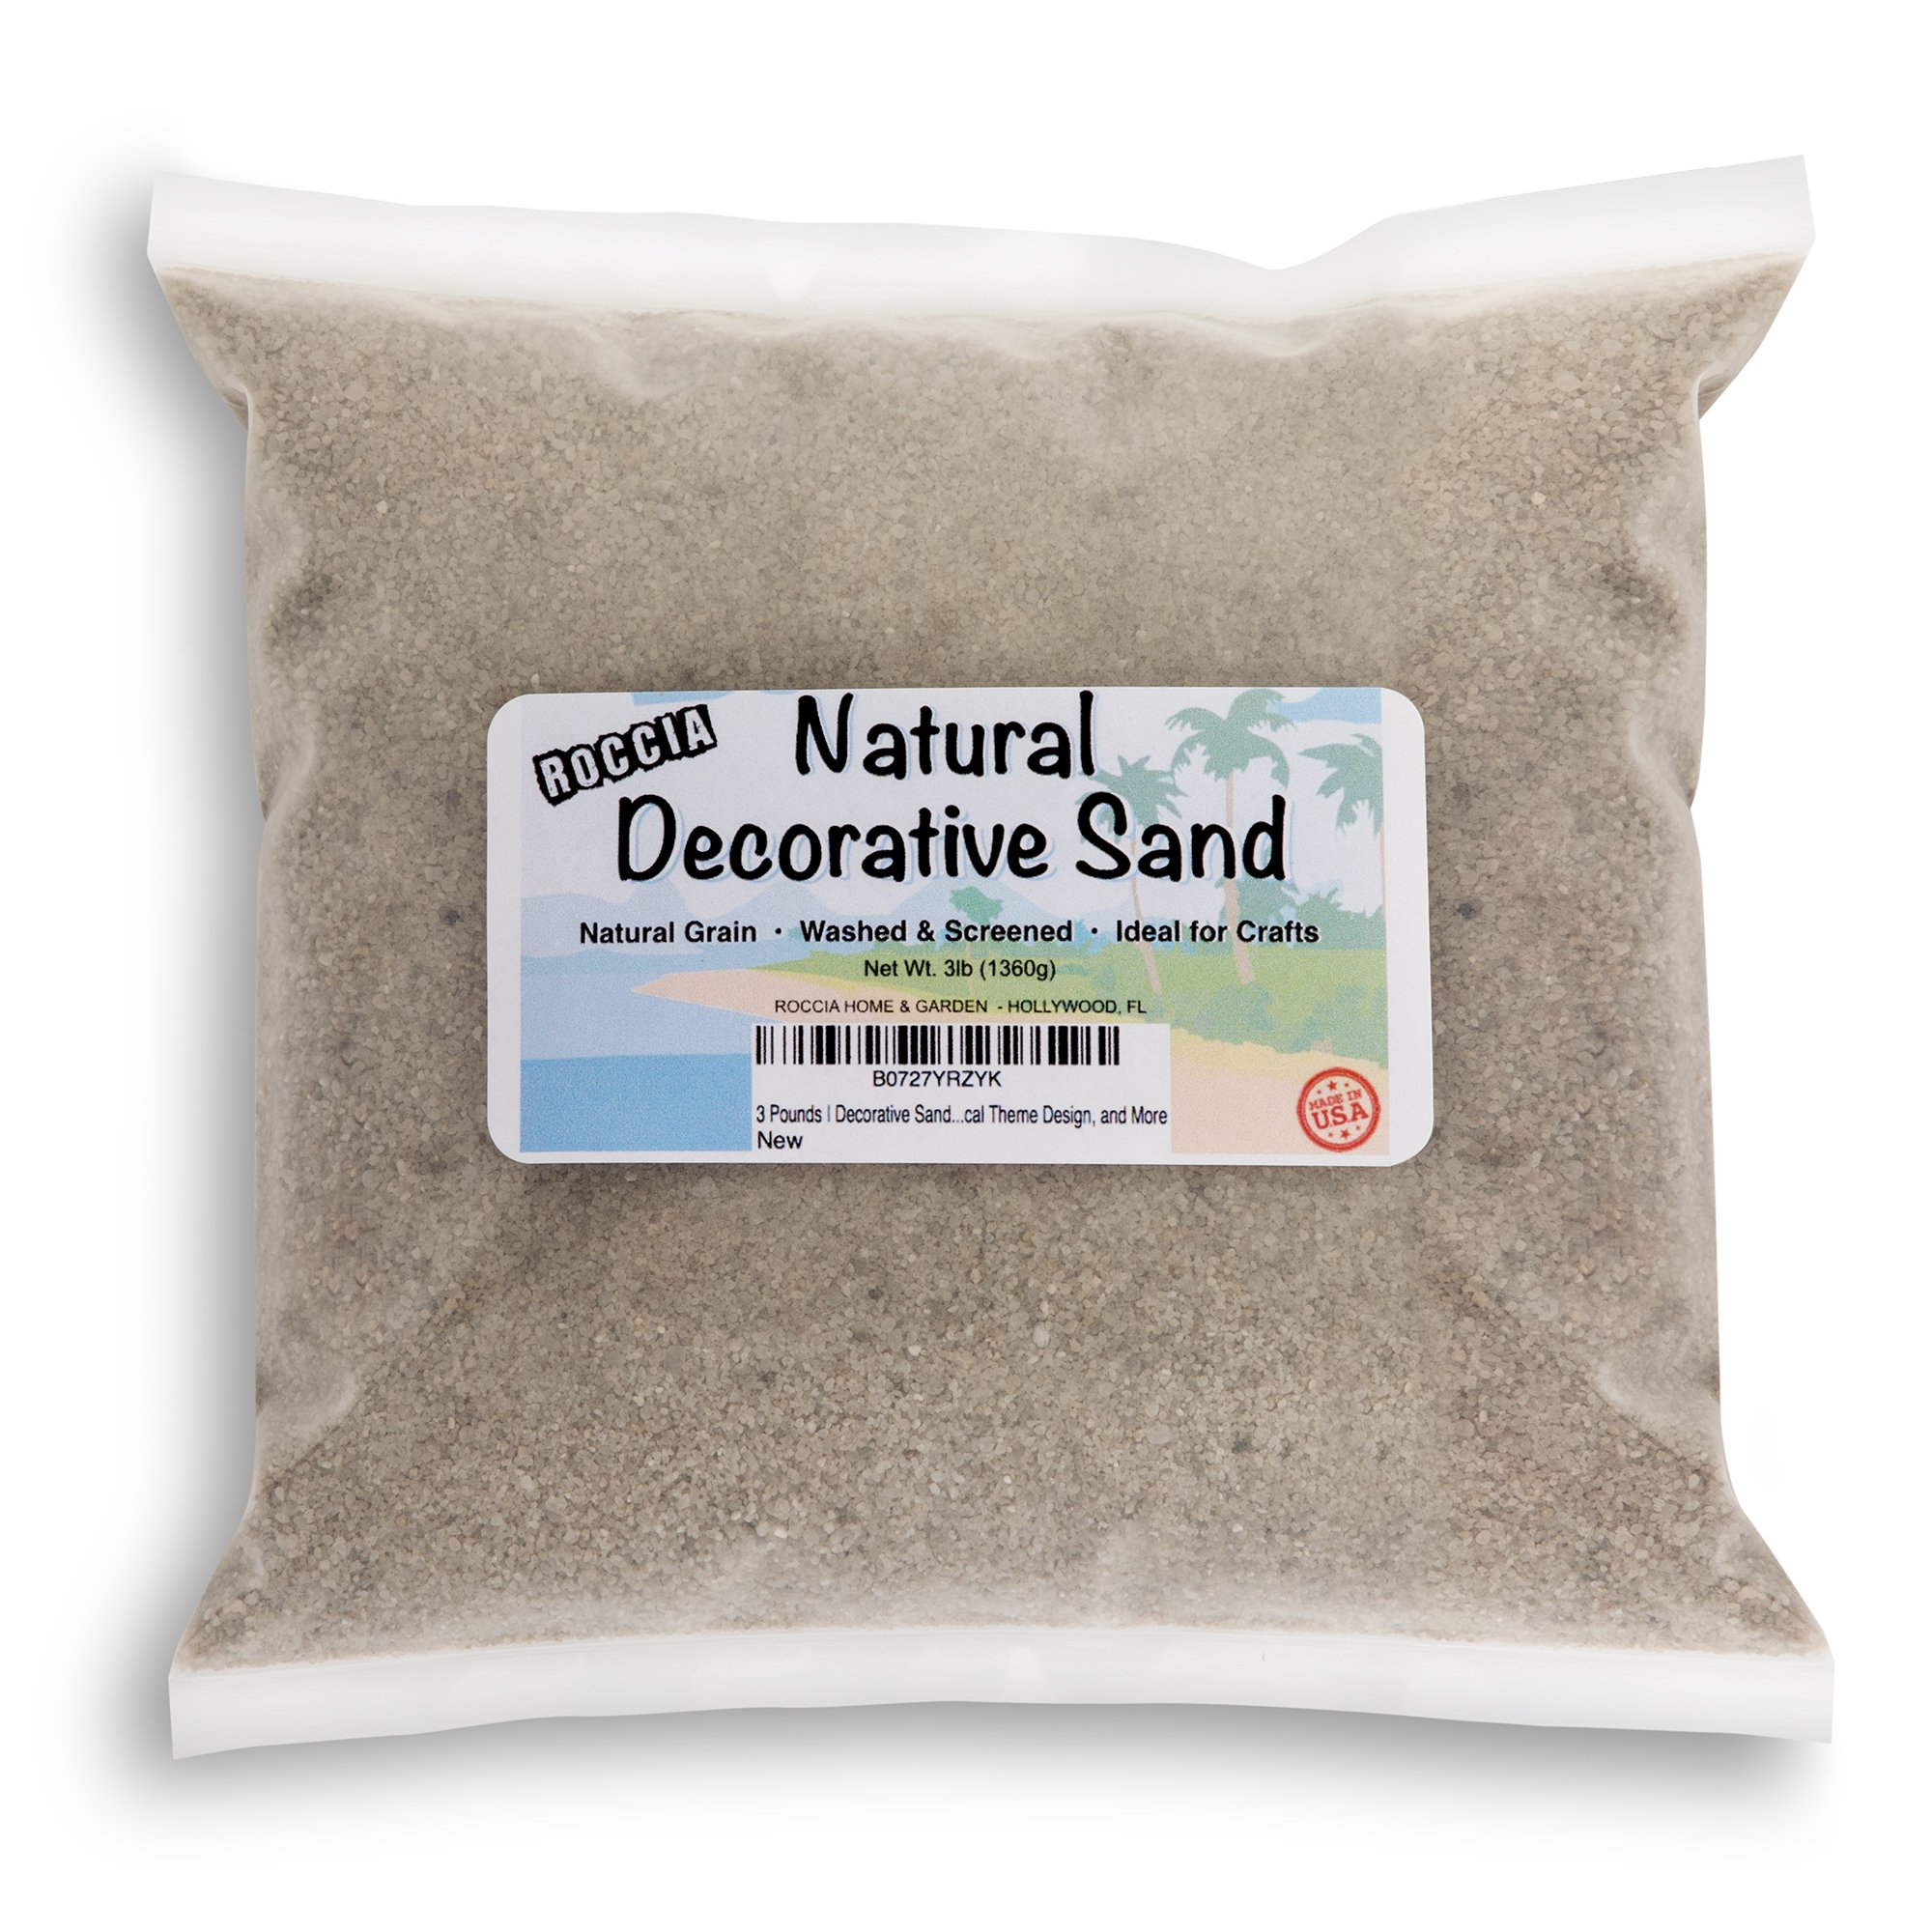 ROCCIA 3 Pounds | Real Sand | Natural Color | For Interior Decor, Vase Filler, Sand Crafts, Nautical Theme Design, and More